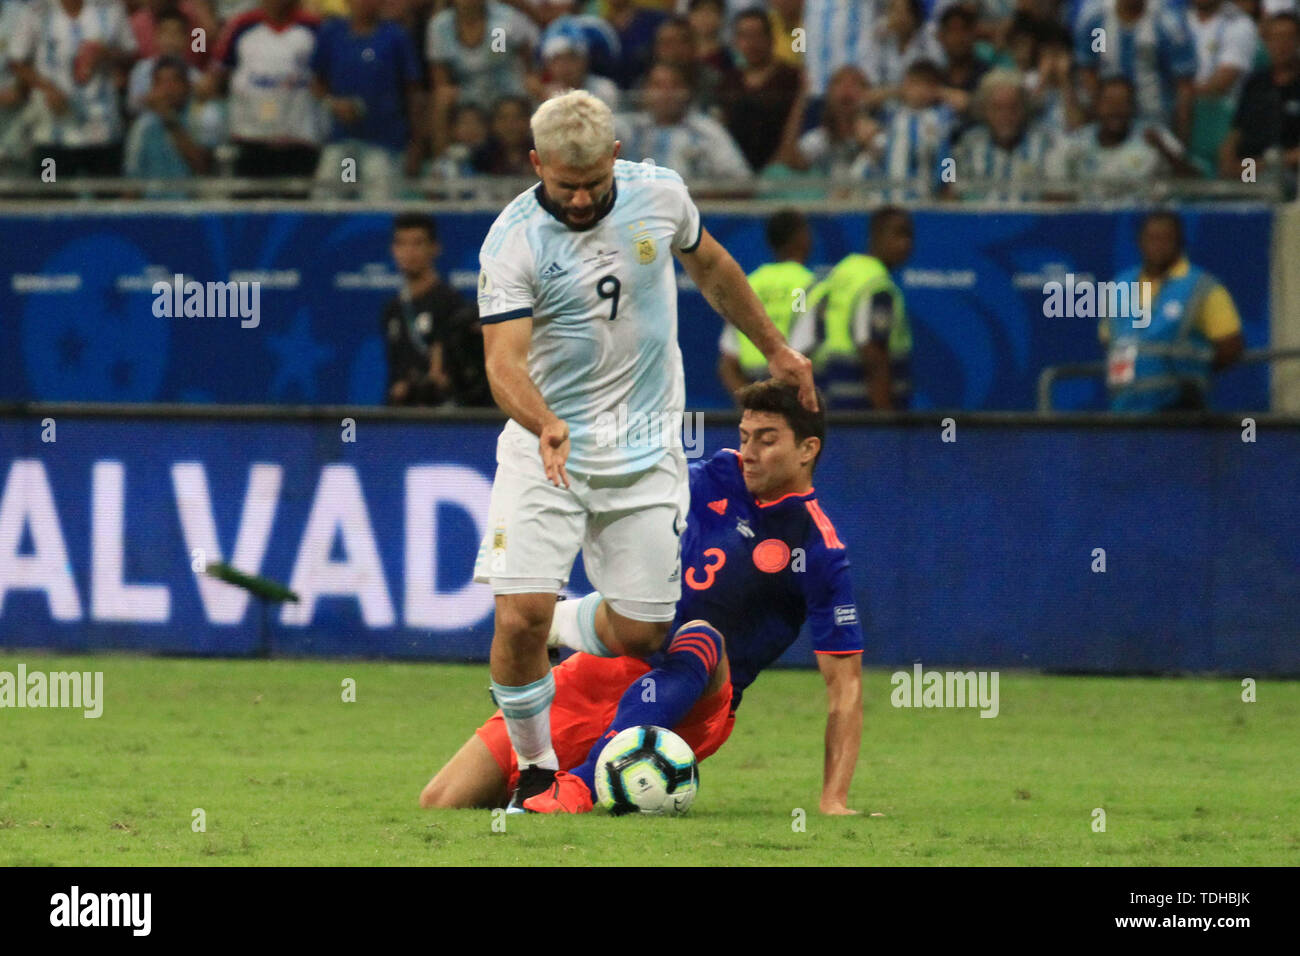 Salvador, Brazil. 15th June, 2019. during match between Argentina and Colombia, game 03, valid for the group phase of Copa America 2019, held this Saturday, 15, at the Arena Fonte Nova in Salvador, BA. Credit: Mauro Akiin Nassor/FotoArena/Alamy Live News - Stock Image